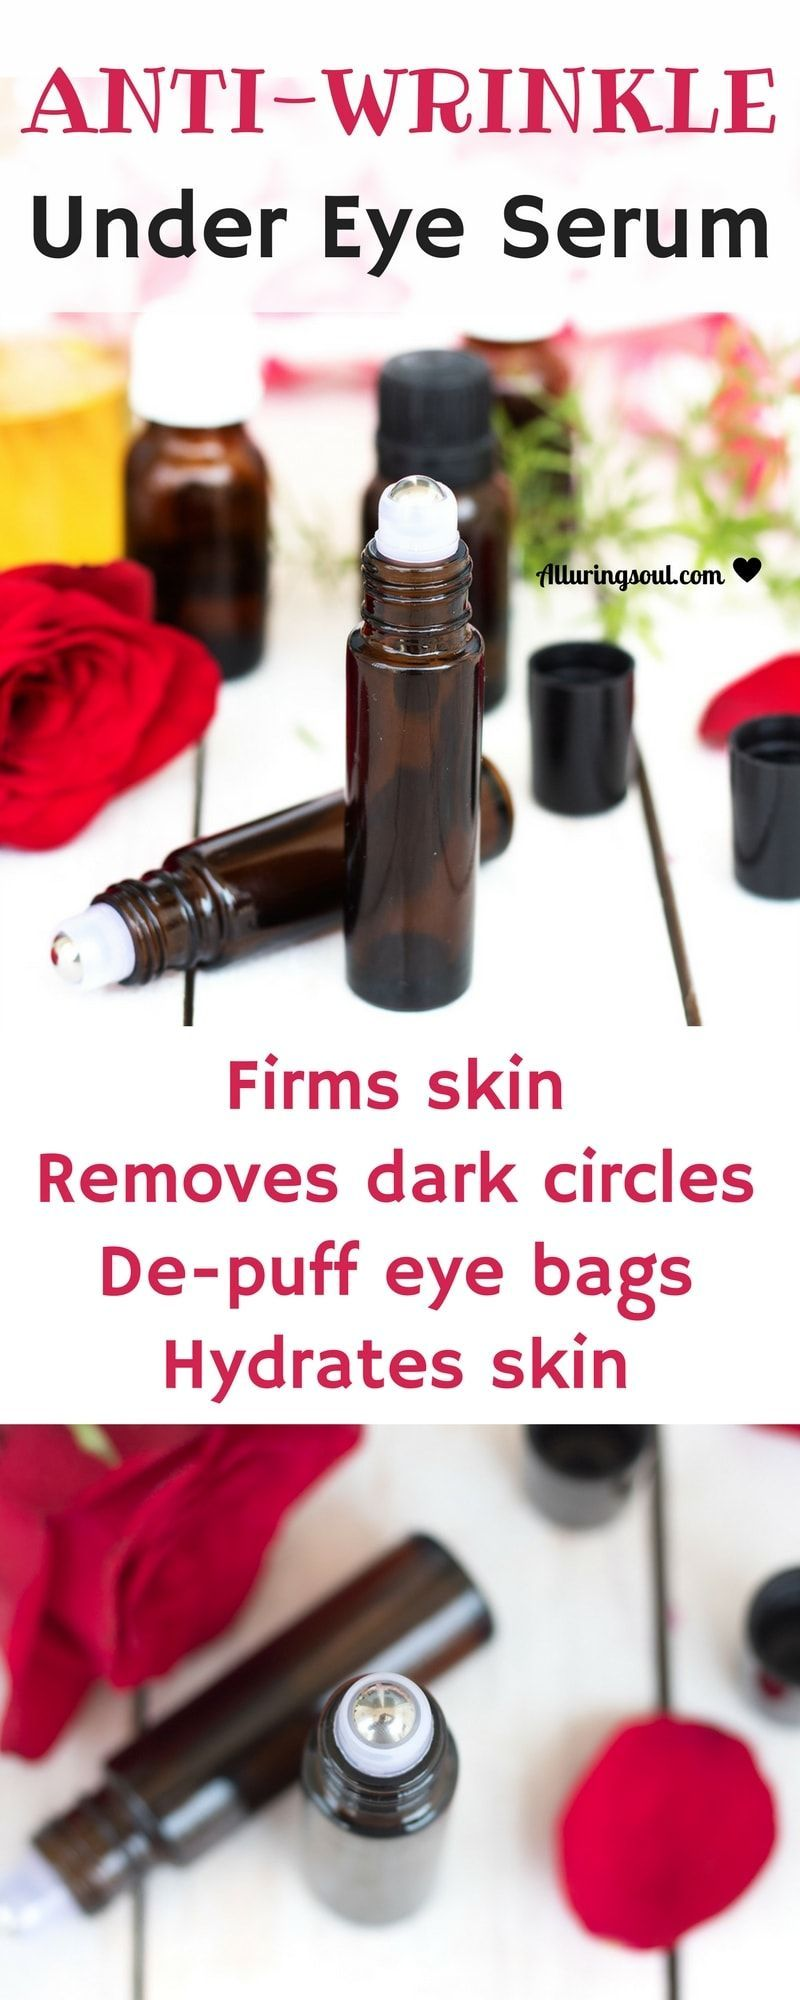 Anti Wrinkle Under Eye Serum Will Help To Remove Fine Lines And Wrinkle Removes Dark Circle Anti Aging Skin Products Anti Aging Essential Oil Recipes Undereye